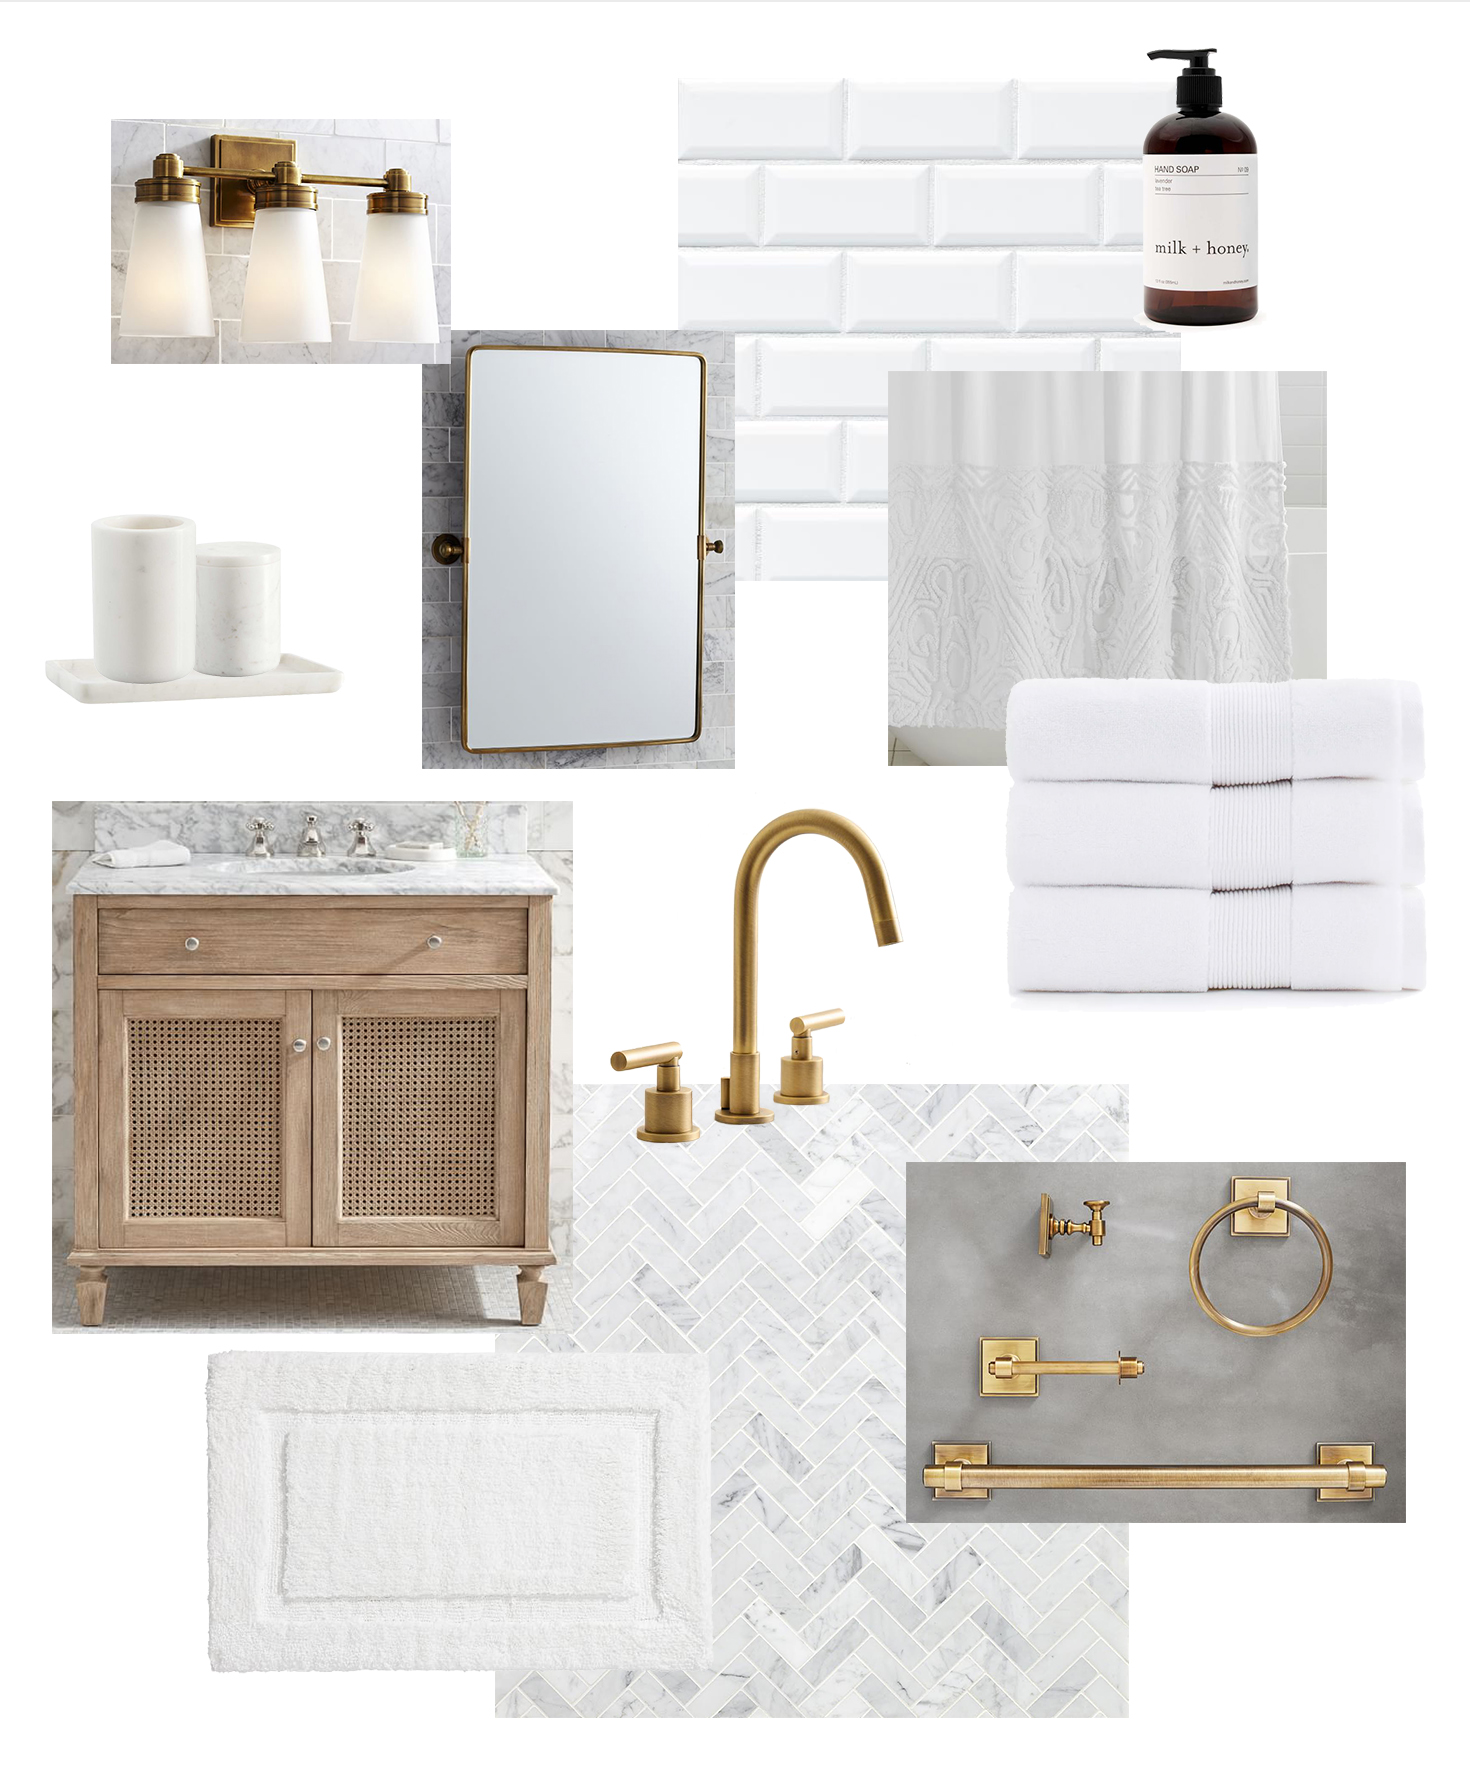 Small Bathroom Remodel Plans: A Simple, Clean Update